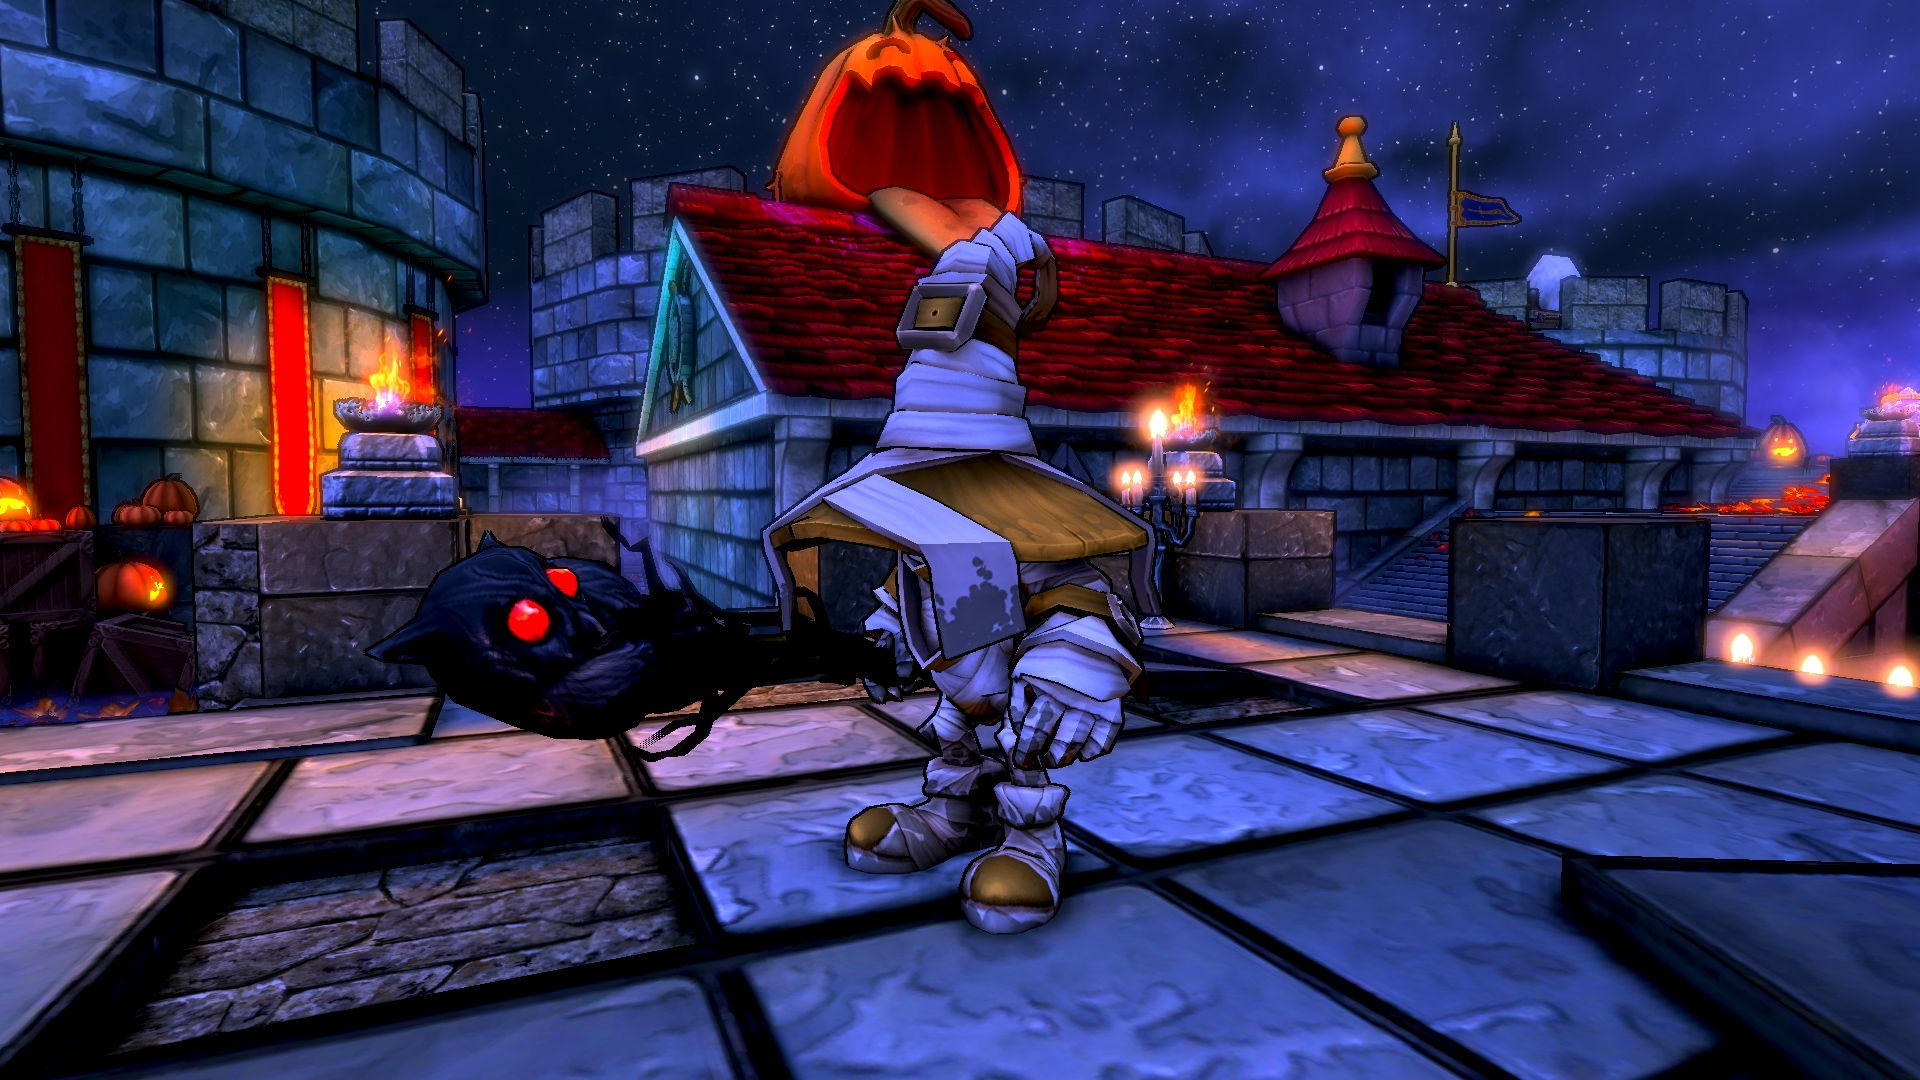 Mummy costume dungeon defenders wiki fandom powered by wikia - Dungeon defenders 2 console ...